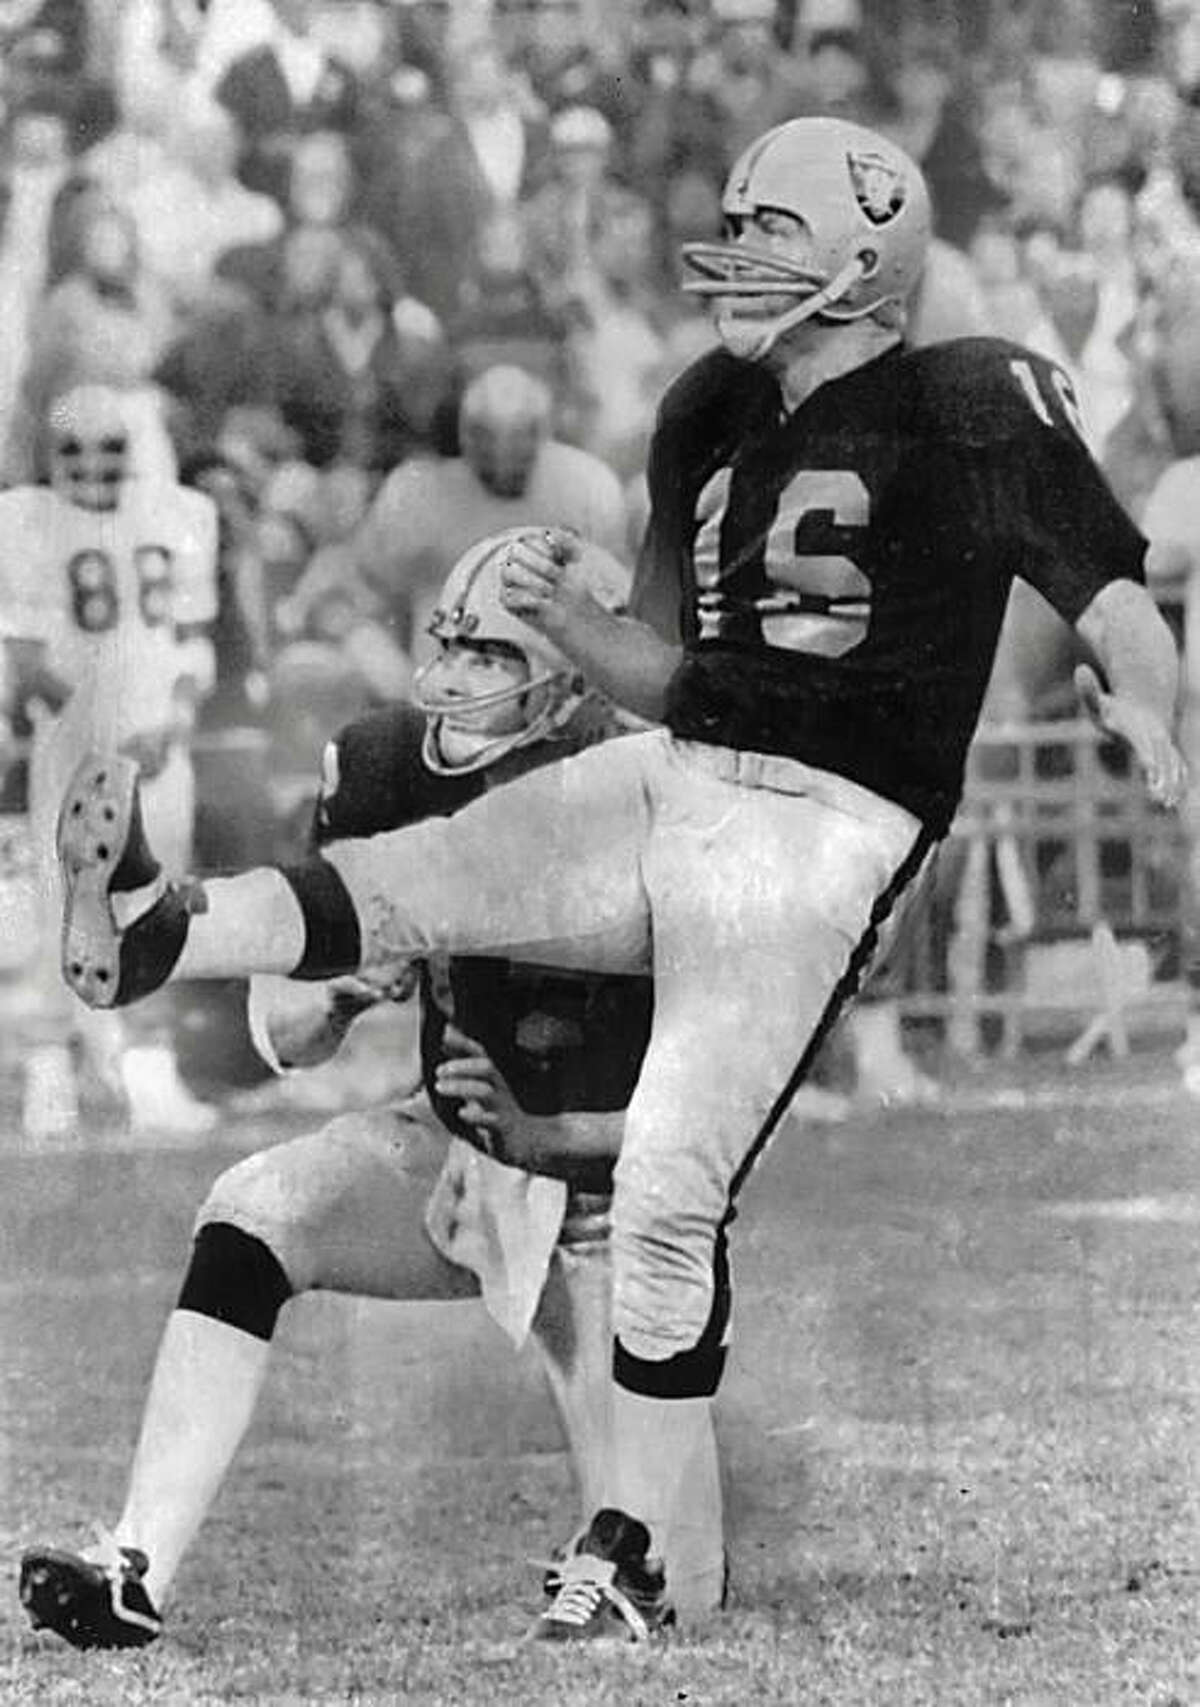 Going strong at age 48. Veteran quarterback and kicker George Blanda of the Oakland Raiders gets set to toss the ball during practice on Wednesday in Oakland, under the watchful eye of head coach John Madden. Wednesday was Blanda's 48th birthday. He's entGoing strong at age 48. Veteran quarterback and kicker George Blanda of the Oakland Raiders gets set to toss the ball during practice on Wednesday in Oakland, under the watchful eye of head coach John Madden. Wednesday was Blanda's 48th birthday. He's entering his 26th pro season and is just 81 points shy of becoming the first 2,000 point scorer in pro football history. Photo was taken September 18, 1975.Oakland Raiders' Ken Stabler and George Blanda watch intently as Blanda kicks a 36 yard field goal with two seconds remaining in the overtime quarter to give the Raiders a 37-34 win over Atlanta. Combination win over Atlanta and Kansas City's loss to Baltimore 11/30 cinched the western division title for the Raiders in the American Conference. Photo was taken December 1, 1975.